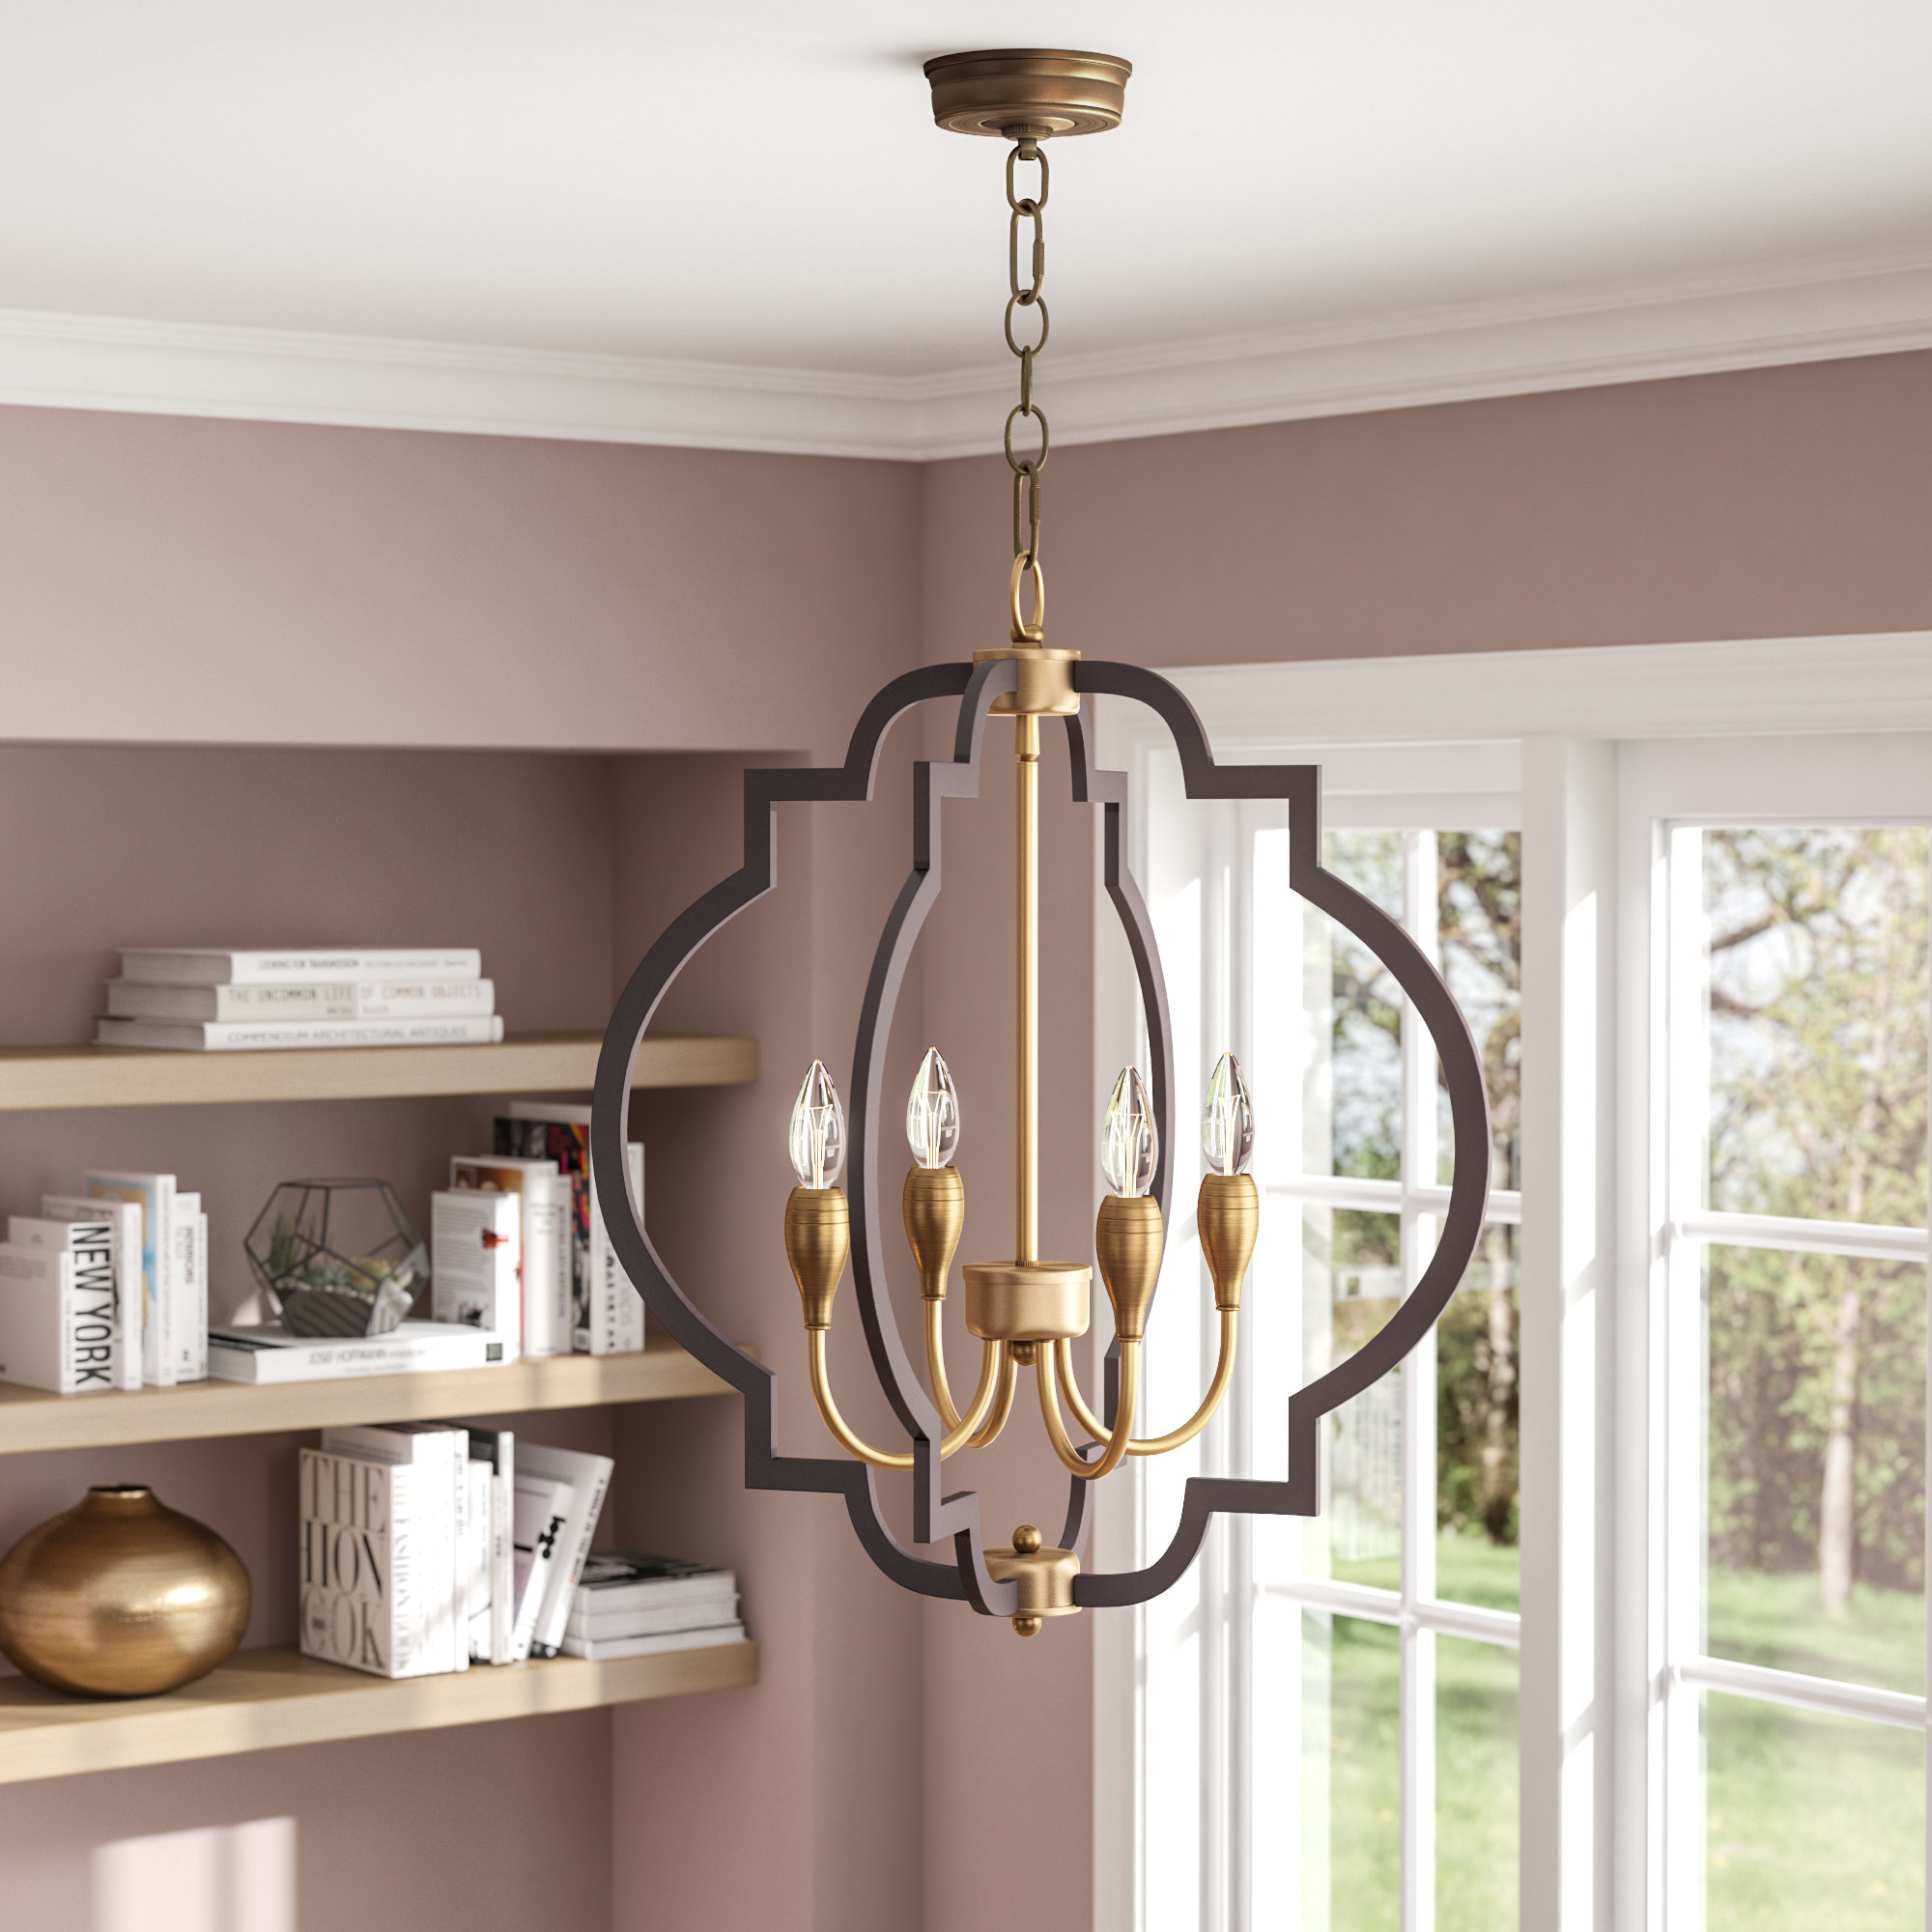 Astin 4 Light Geometric Chandelier Pertaining To Bennington 4 Light Candle Style Chandeliers (View 8 of 30)